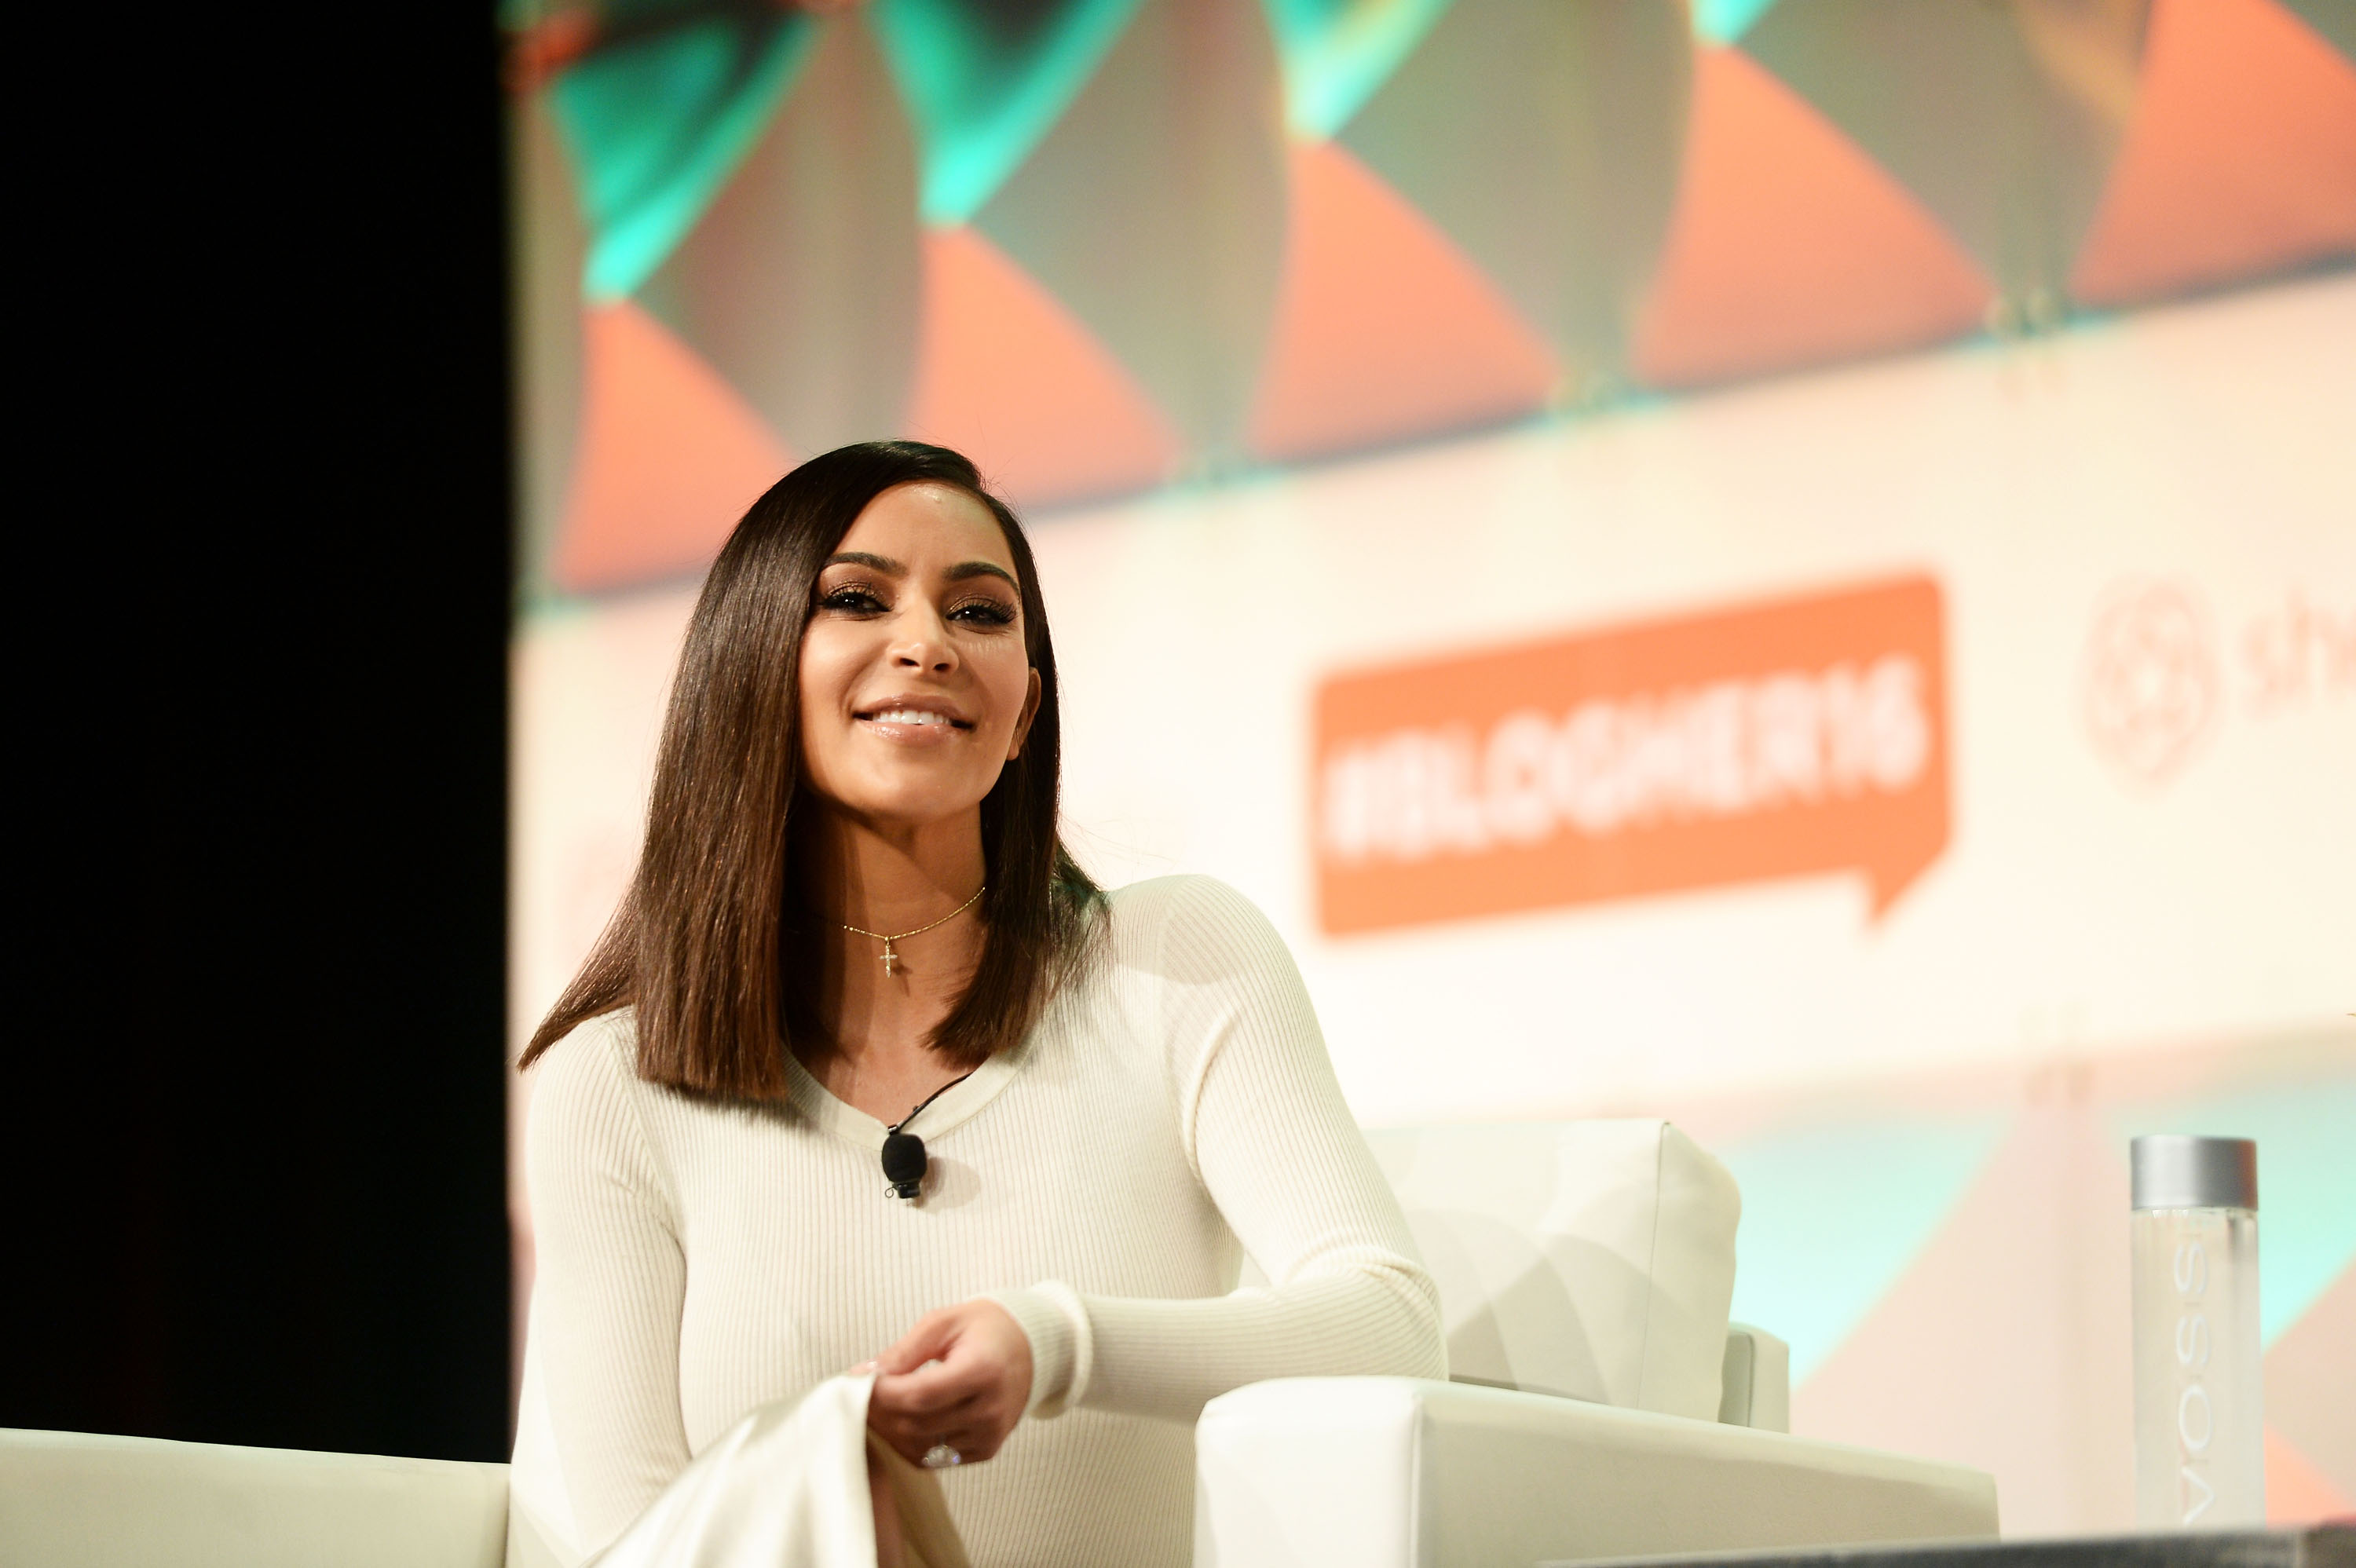 #BlogHer16 Experts Among Us Conference